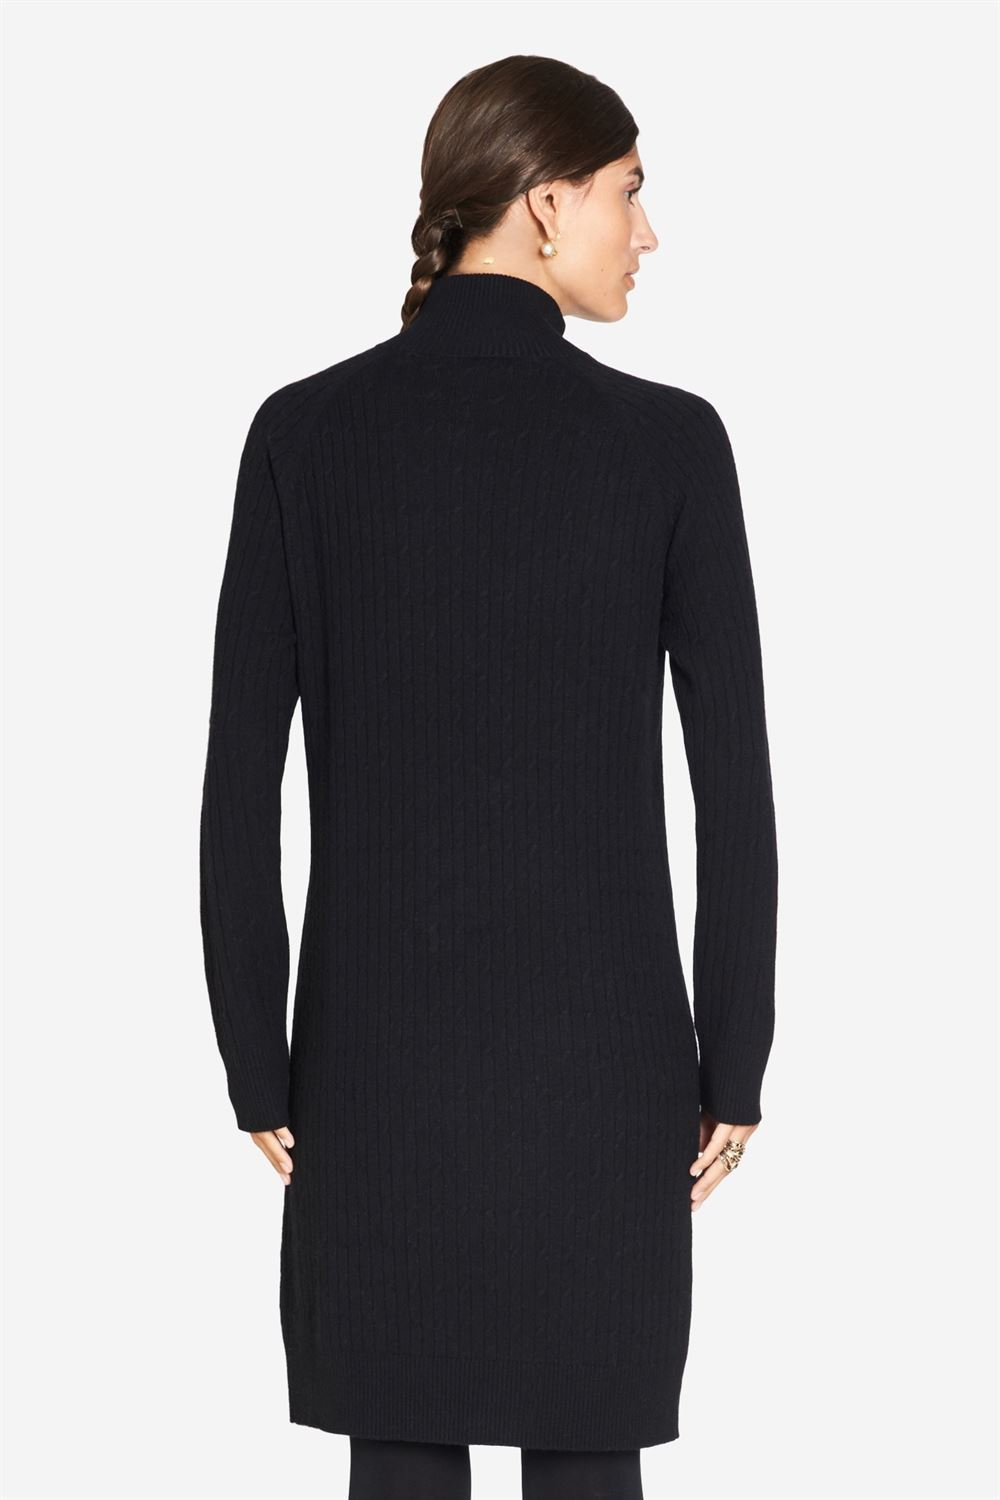 Black High-necked nursing dress in cable knit - Seen from behind